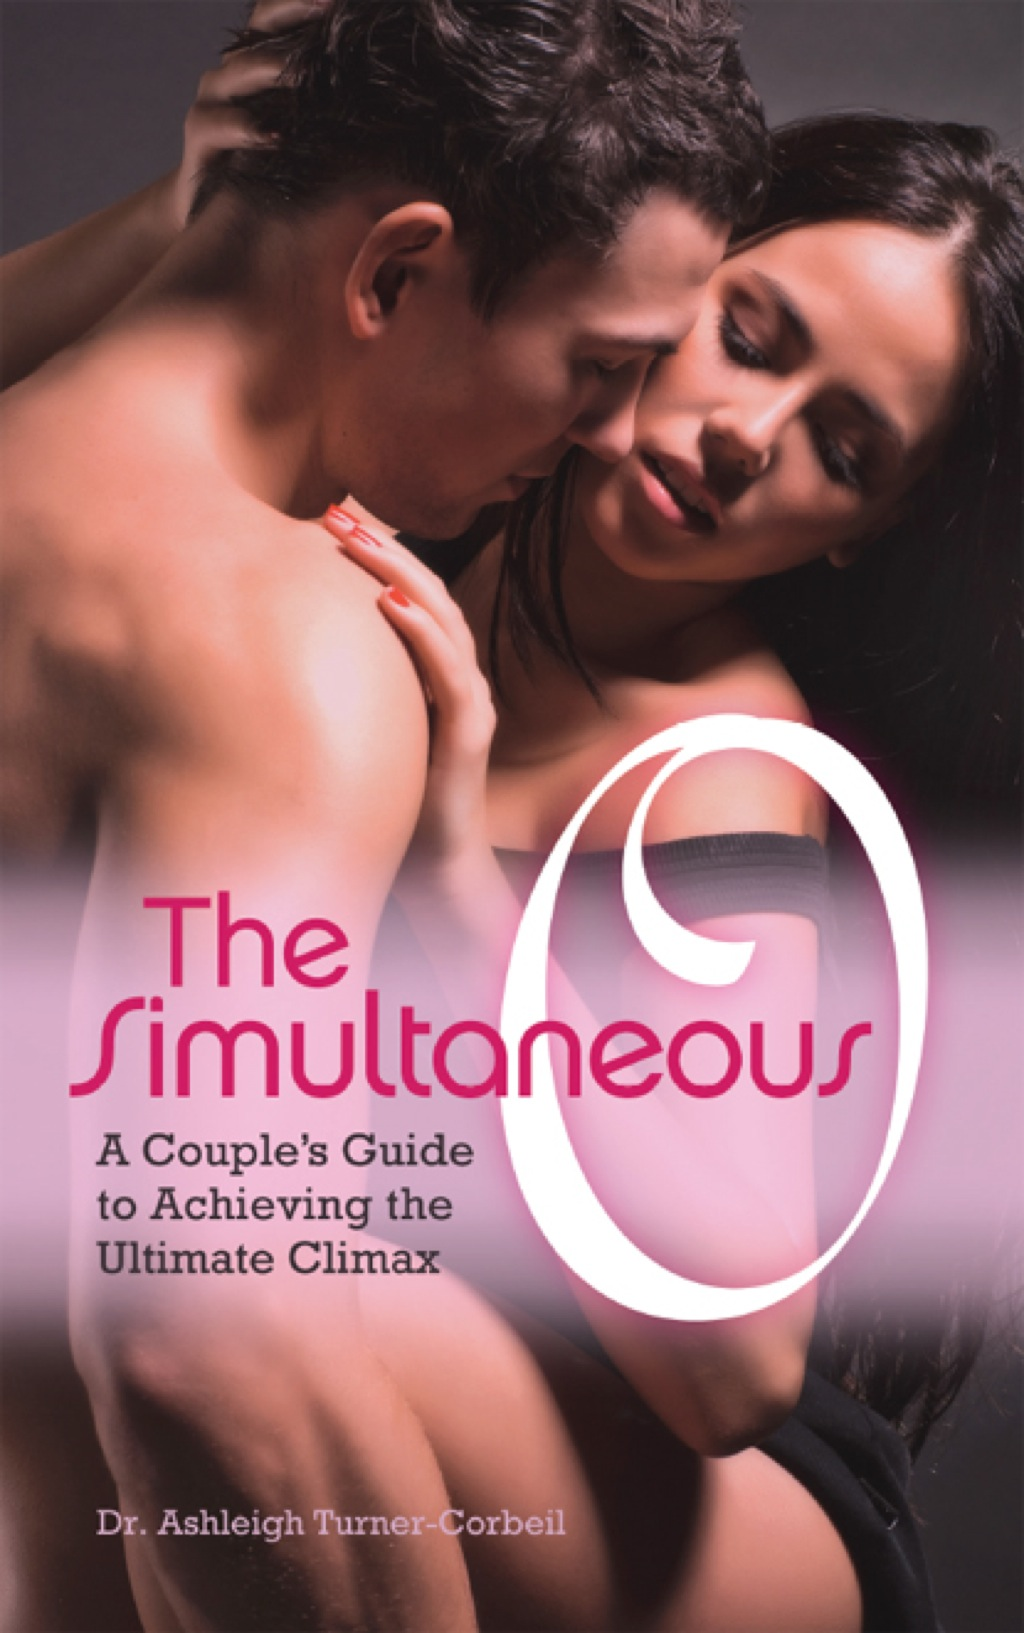 The Simultaneous O: A Couple's Guide to Achieving the Ultimate Climax (ebook) eBooks